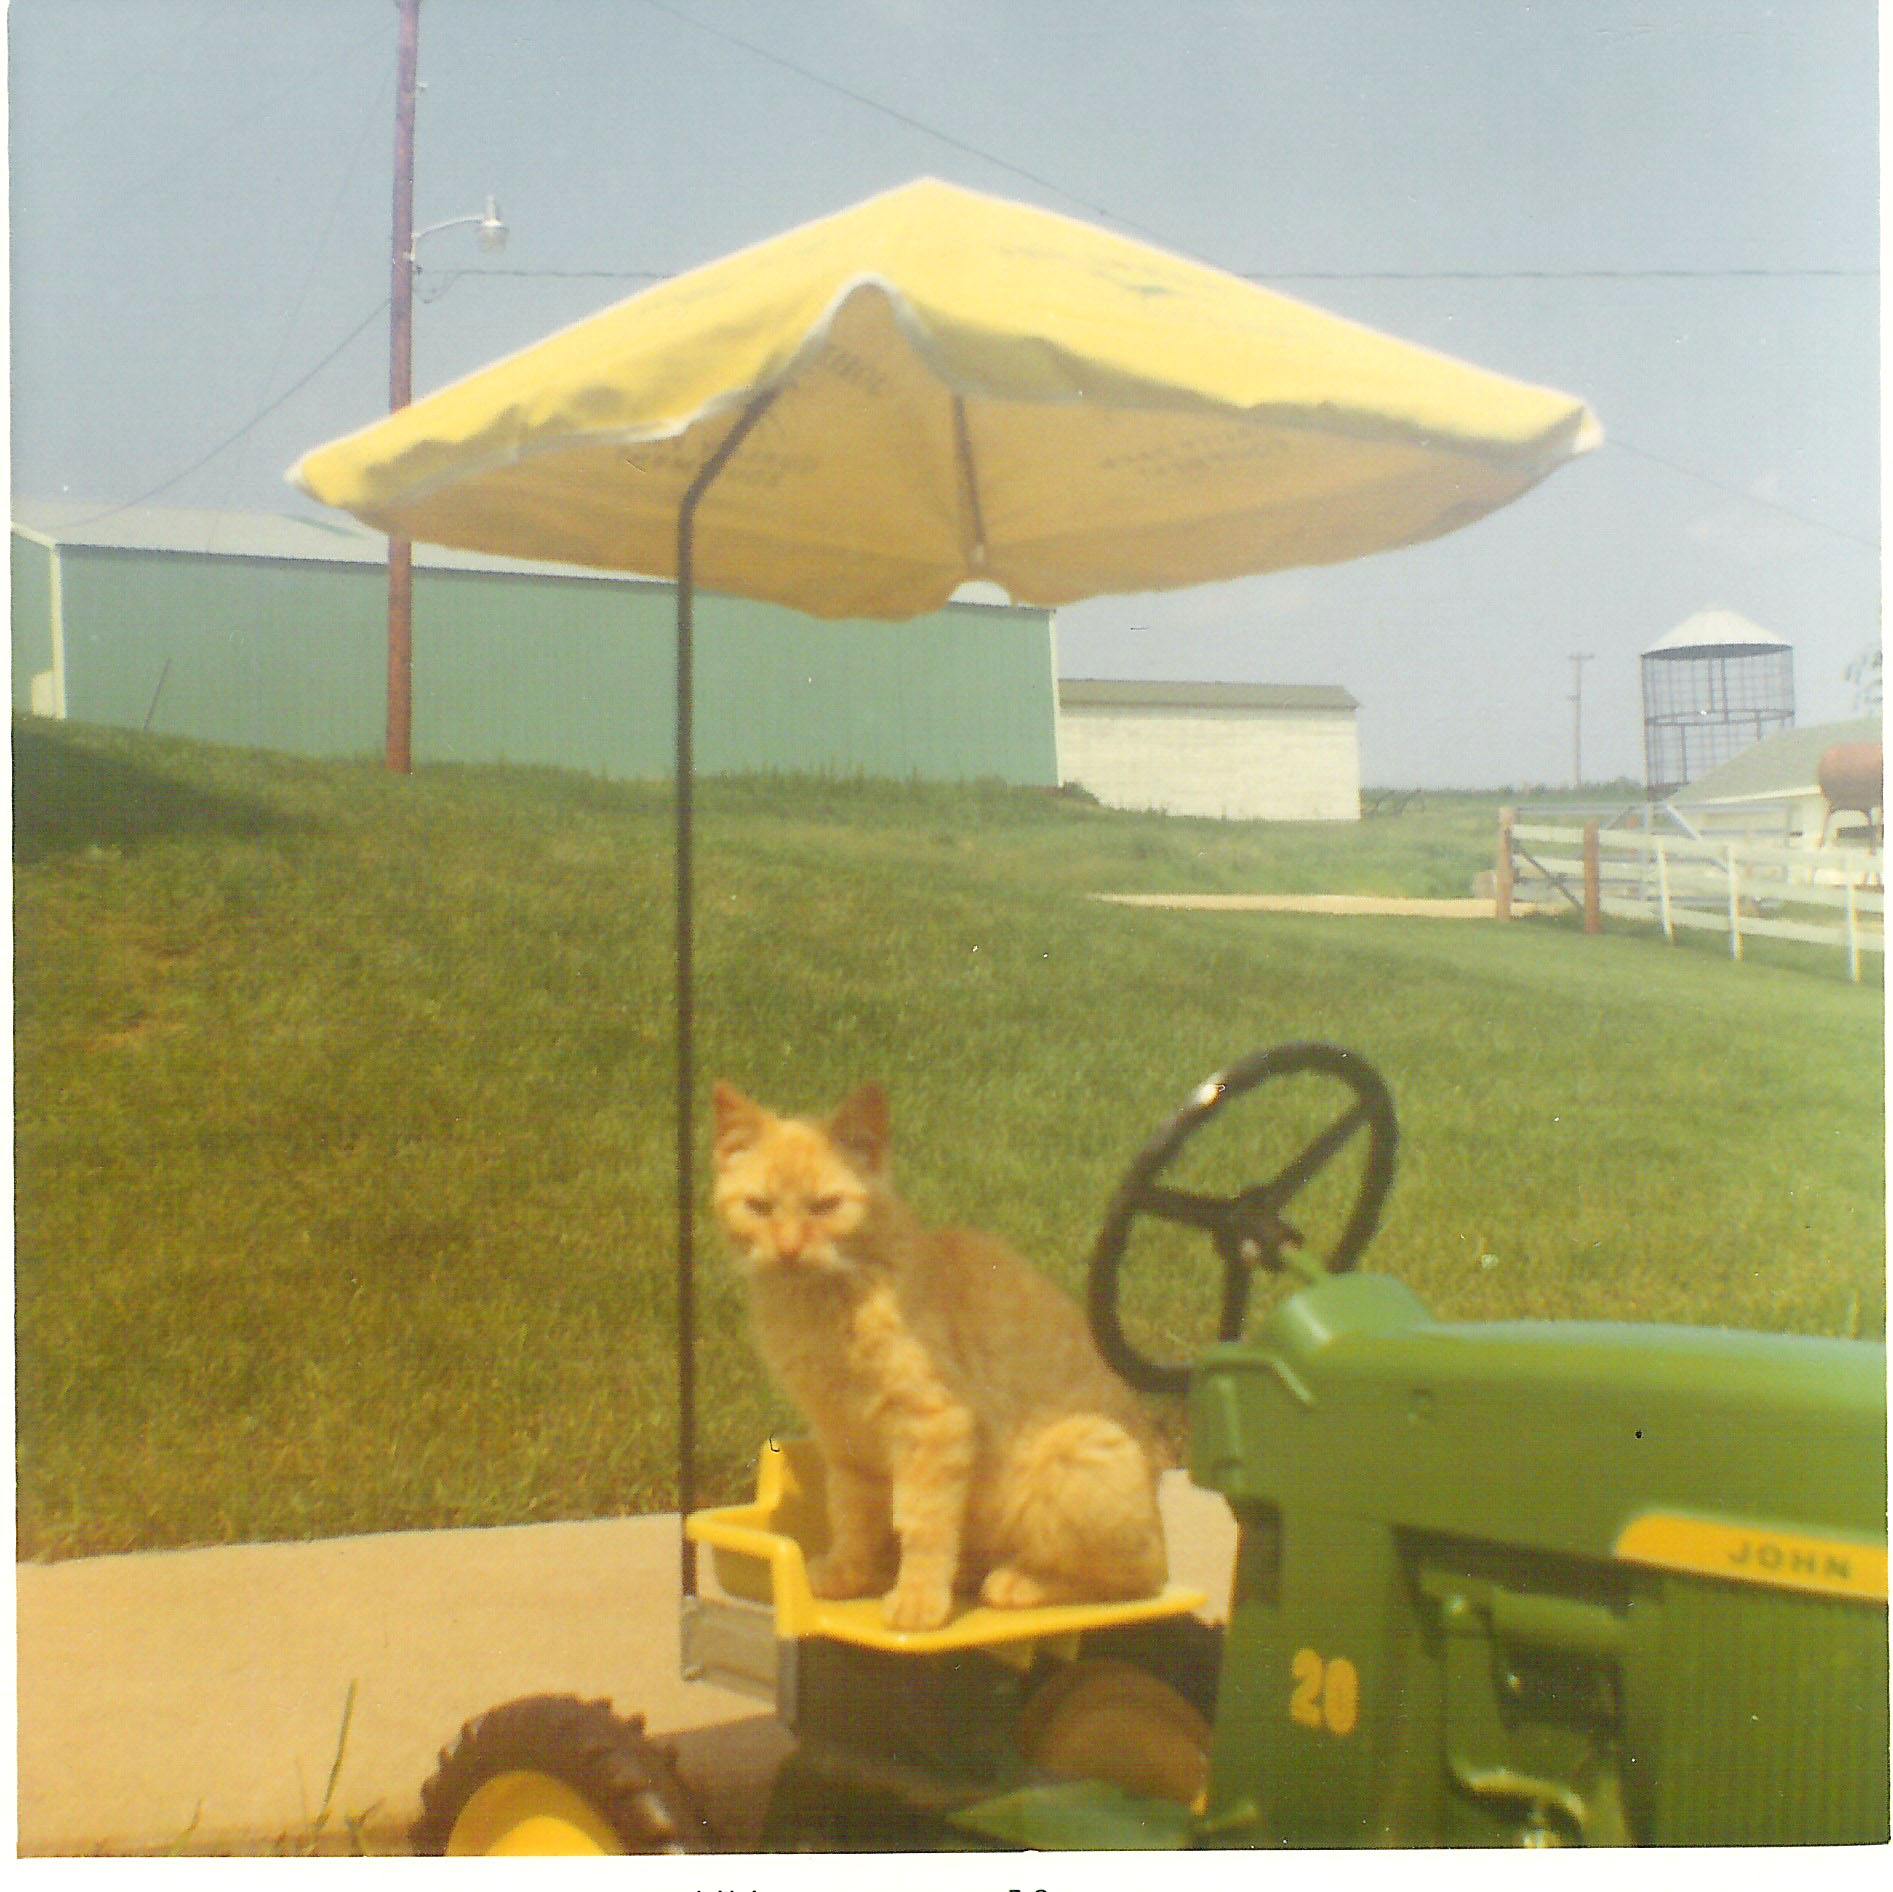 A rare shot of the pedal tractor with its umbrella attached. That didn't last long.